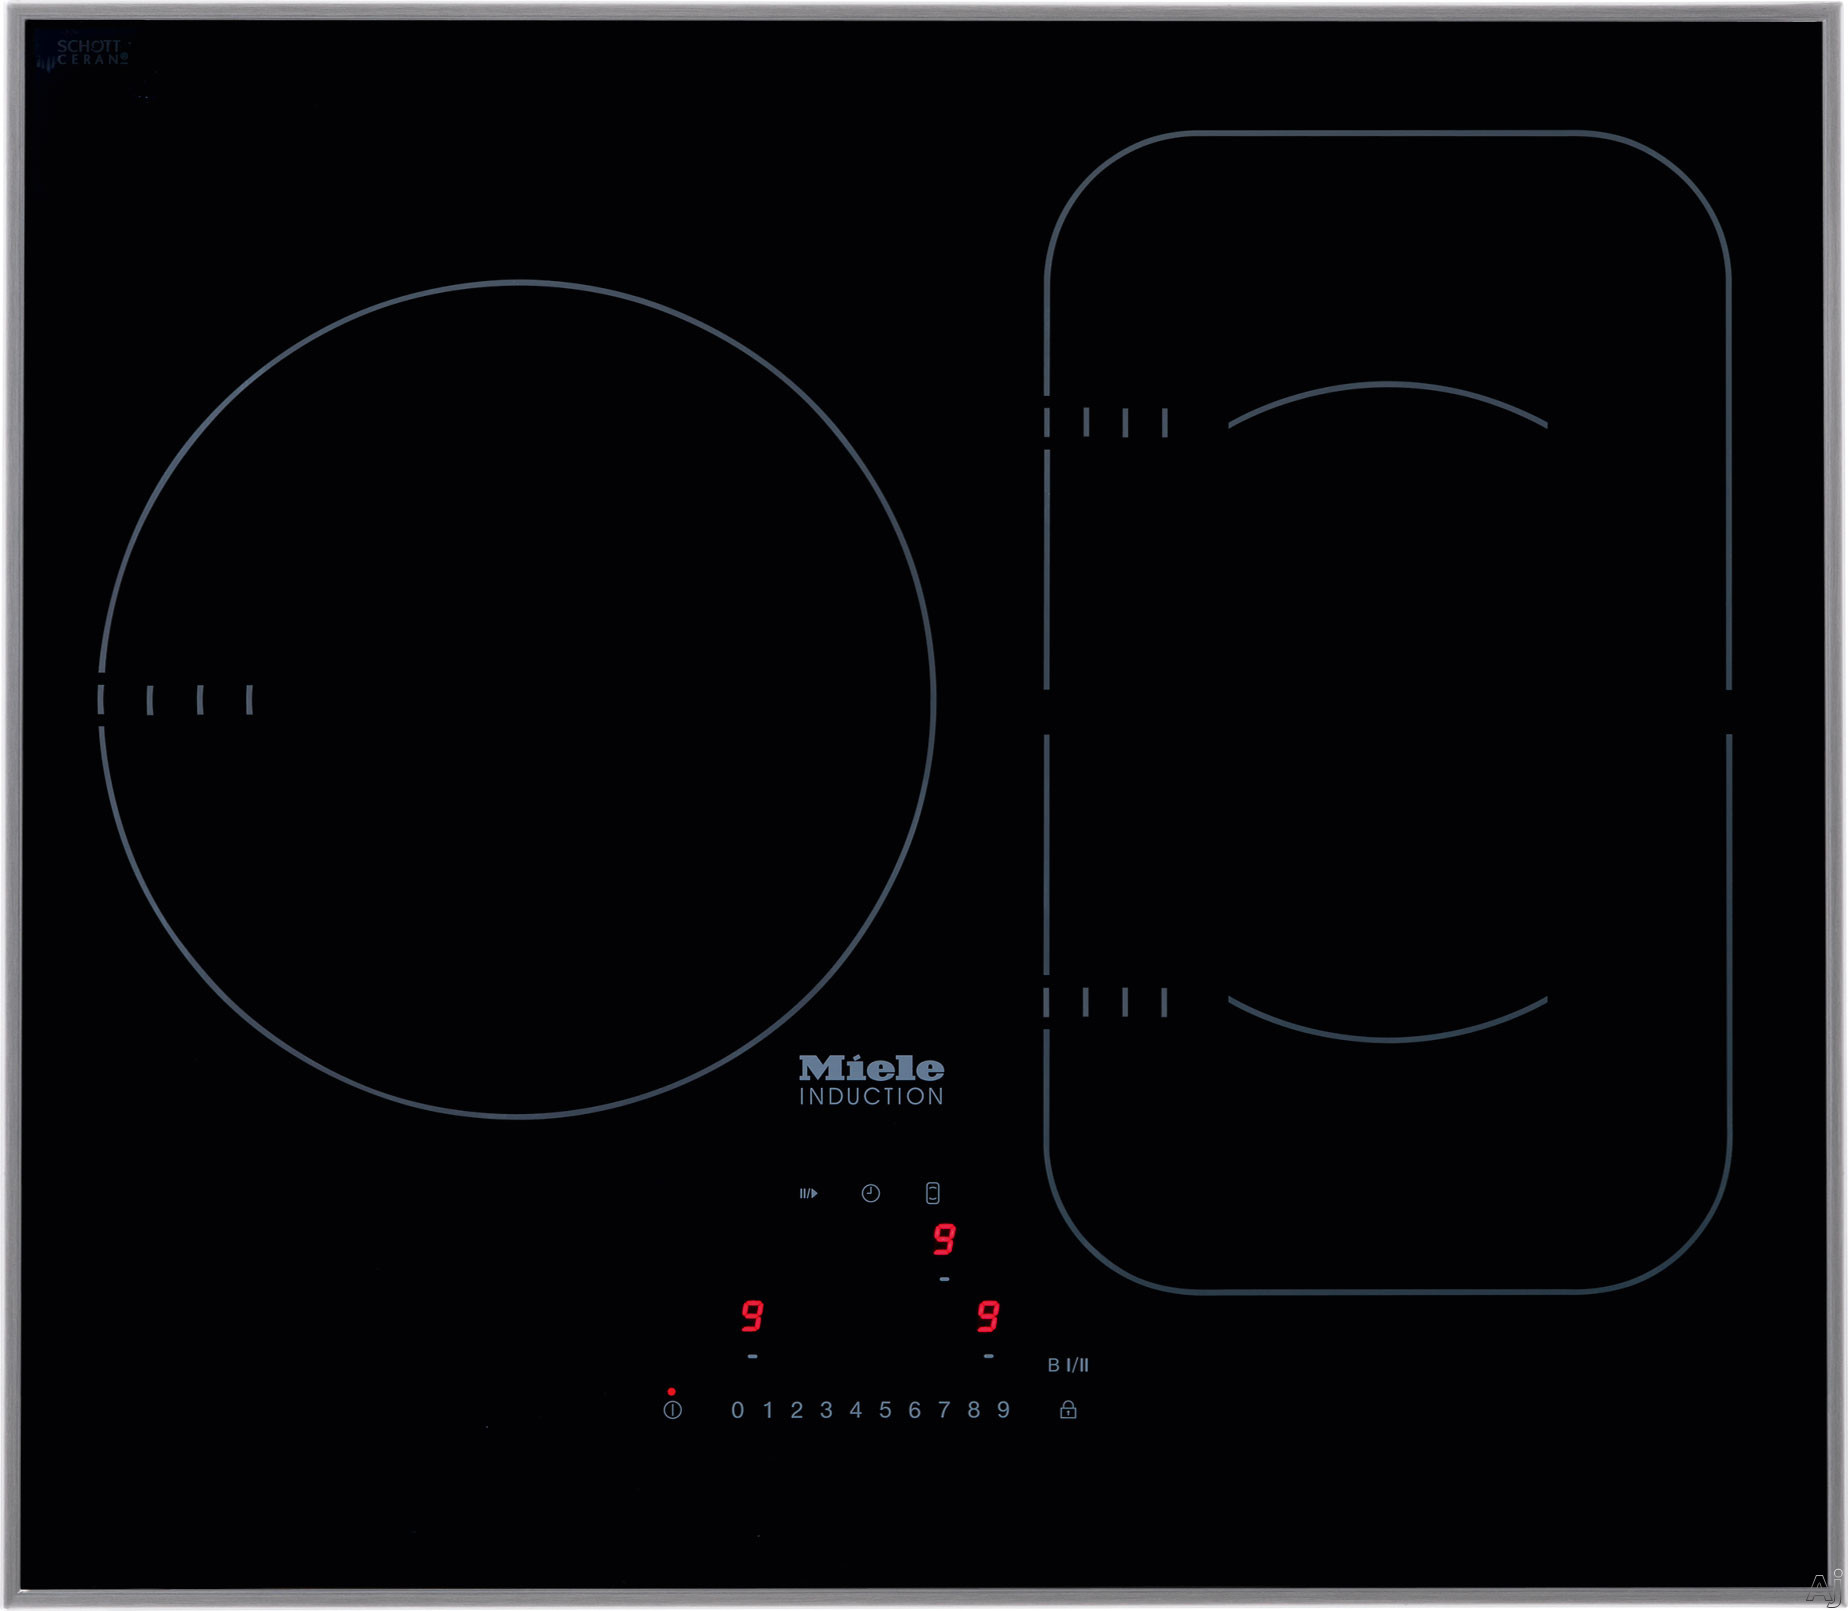 Miele KM6320 24 Inch Induction Cooktop with 3 Cooking Zones, Twin Booster Function, PowerFlex Technology, Con@ctivity 2.0 Cooktop/Hood Communication and Direct Selection Plus Control